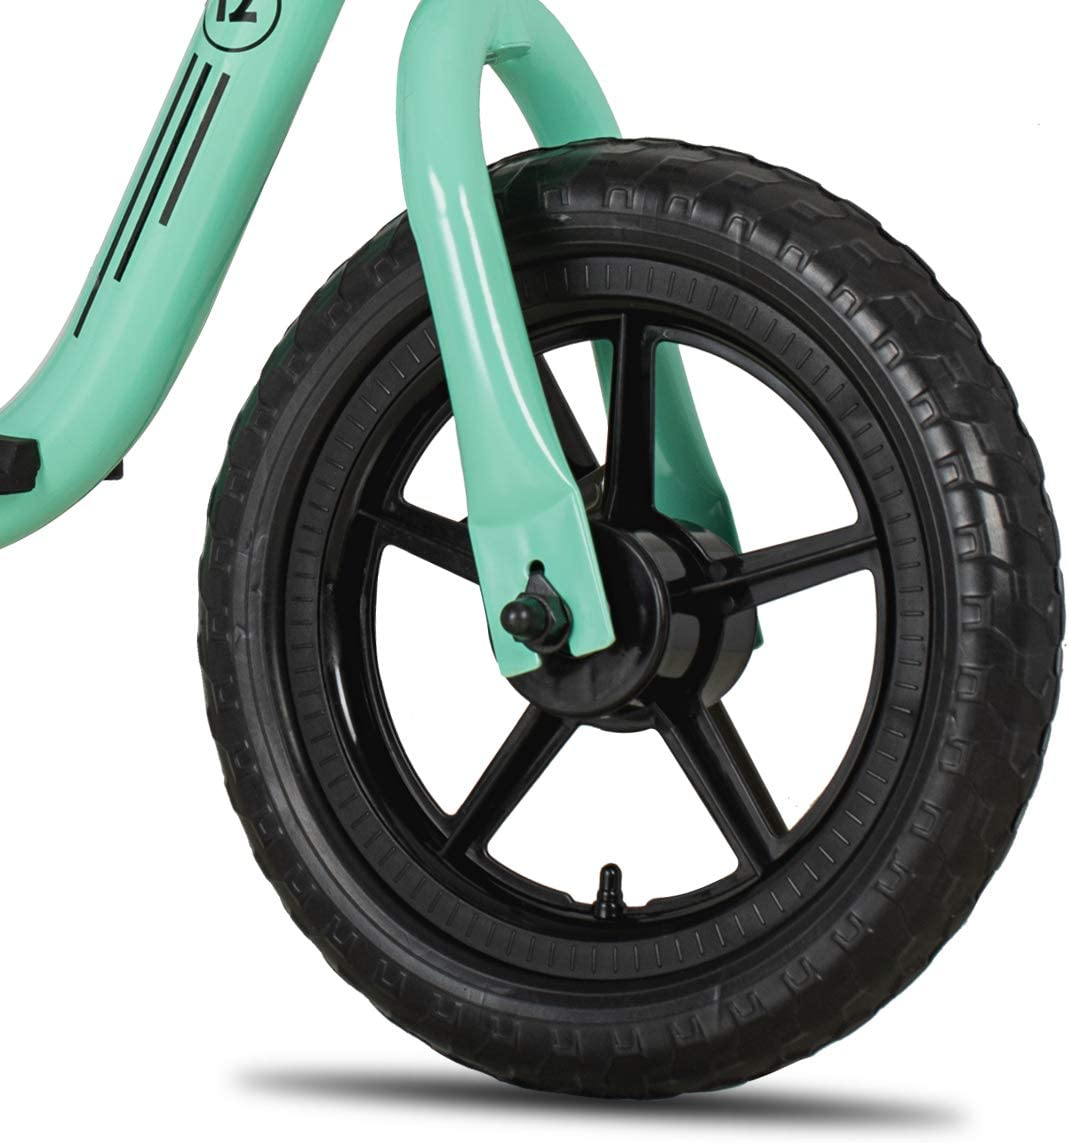 JOYSTAR 10//12 Kids Balance Bike with Footrest for Girls /& Boys Toddler Push Bike with Airless Tire and Adjustable Seat Height Ages 18 Months to 5 Years Black Blue Green Pink